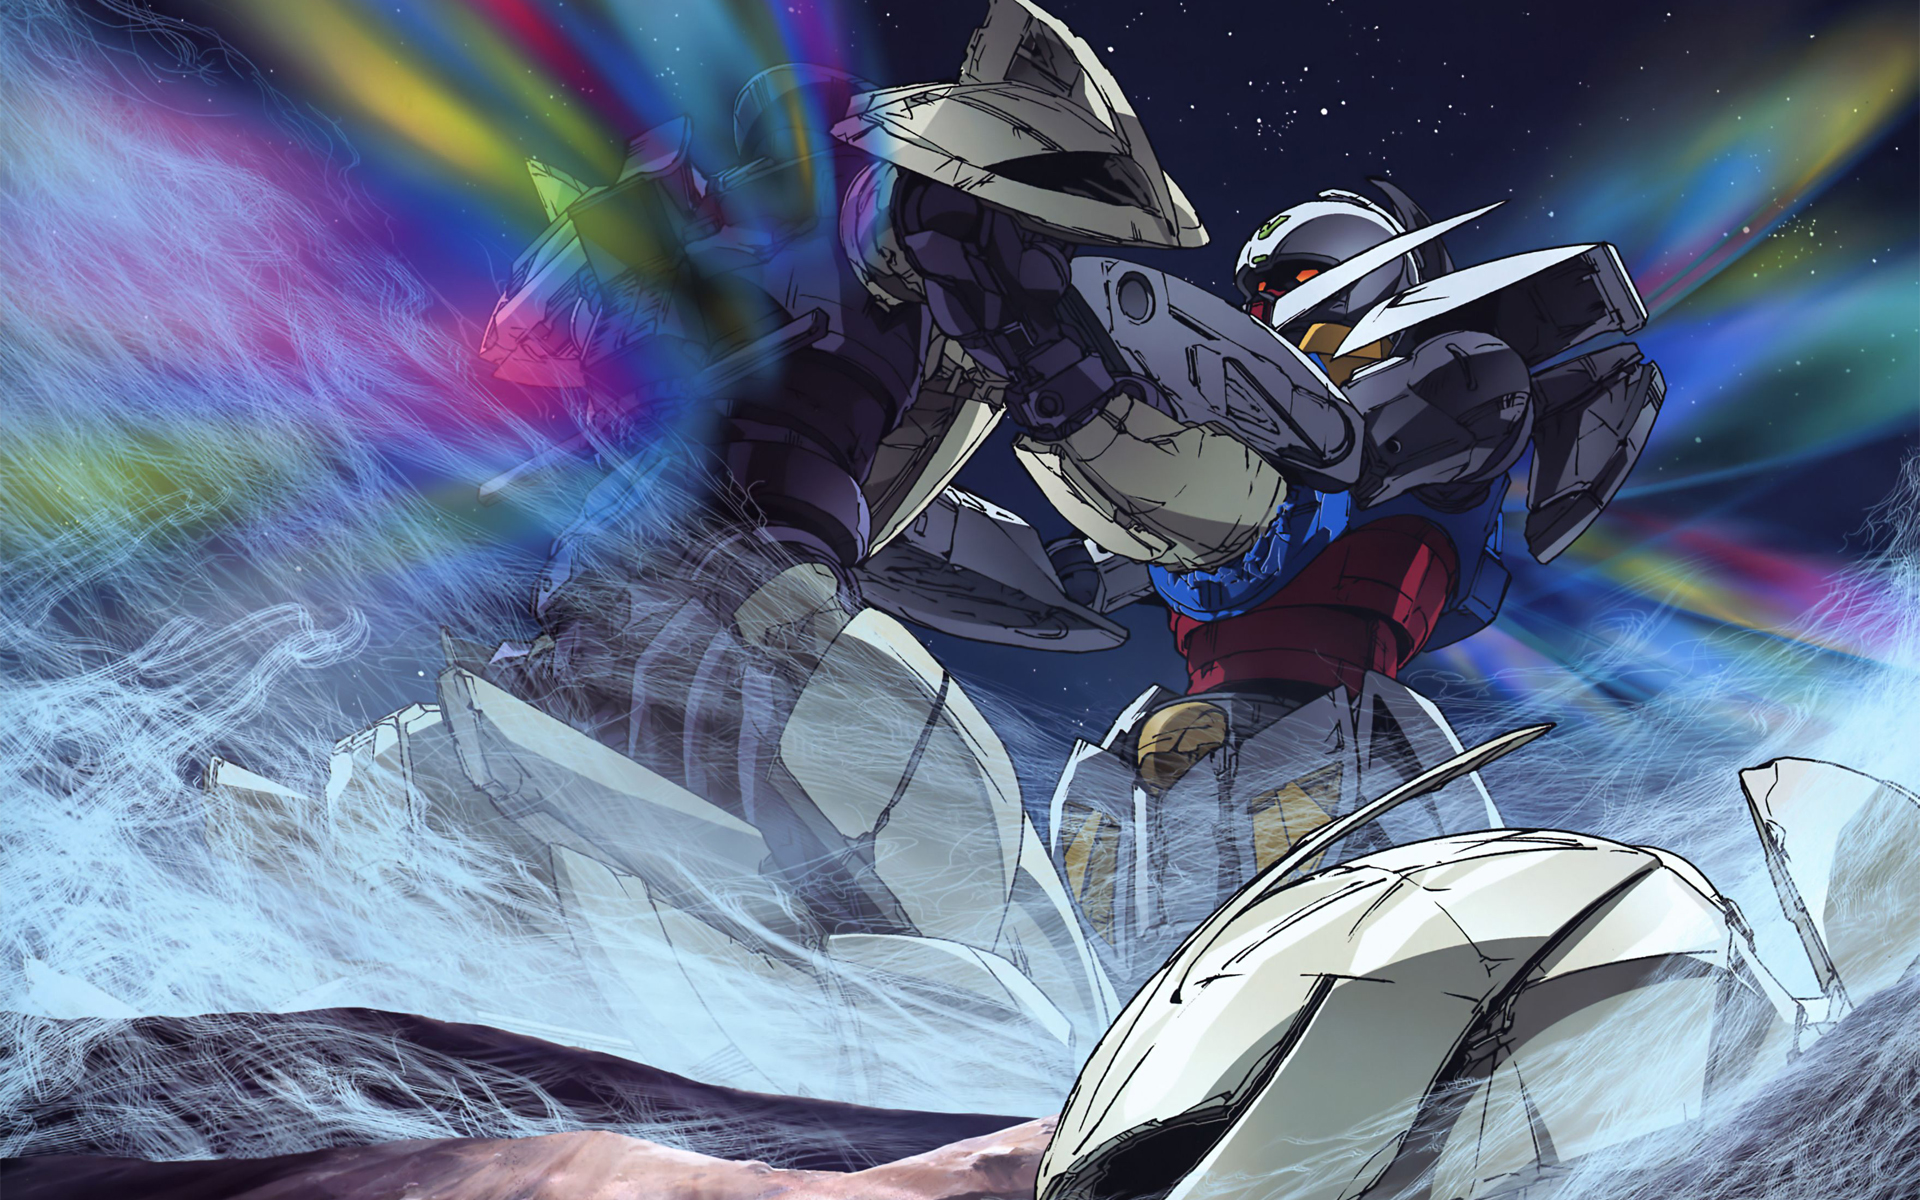 Gundam Turn Wallpaper 1920x1200 Gundam Turn A Gundam 1920x1200